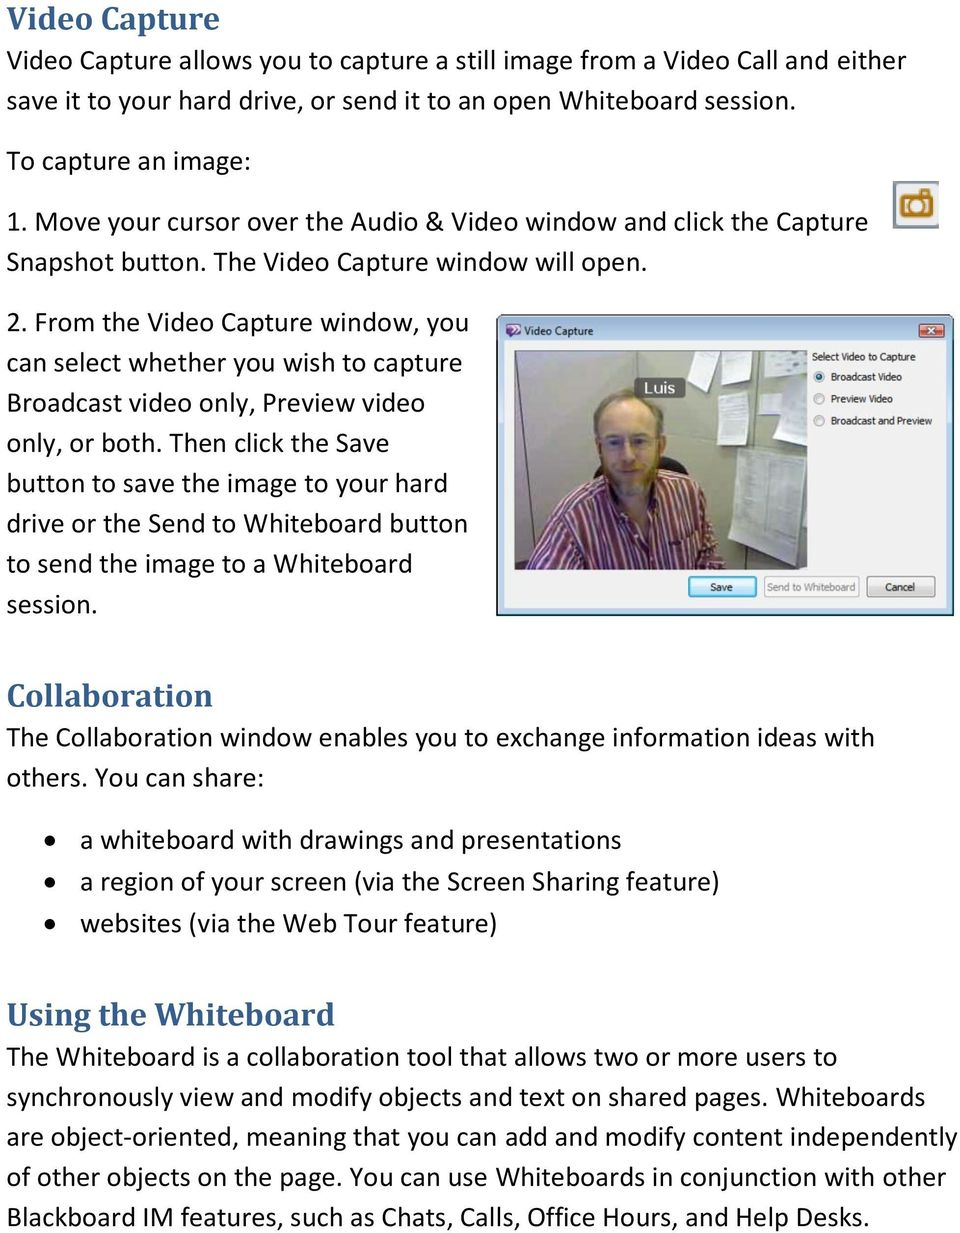 From the Video Capture window, you can select whether you wish to capture Broadcast video only, Preview video only, or both.